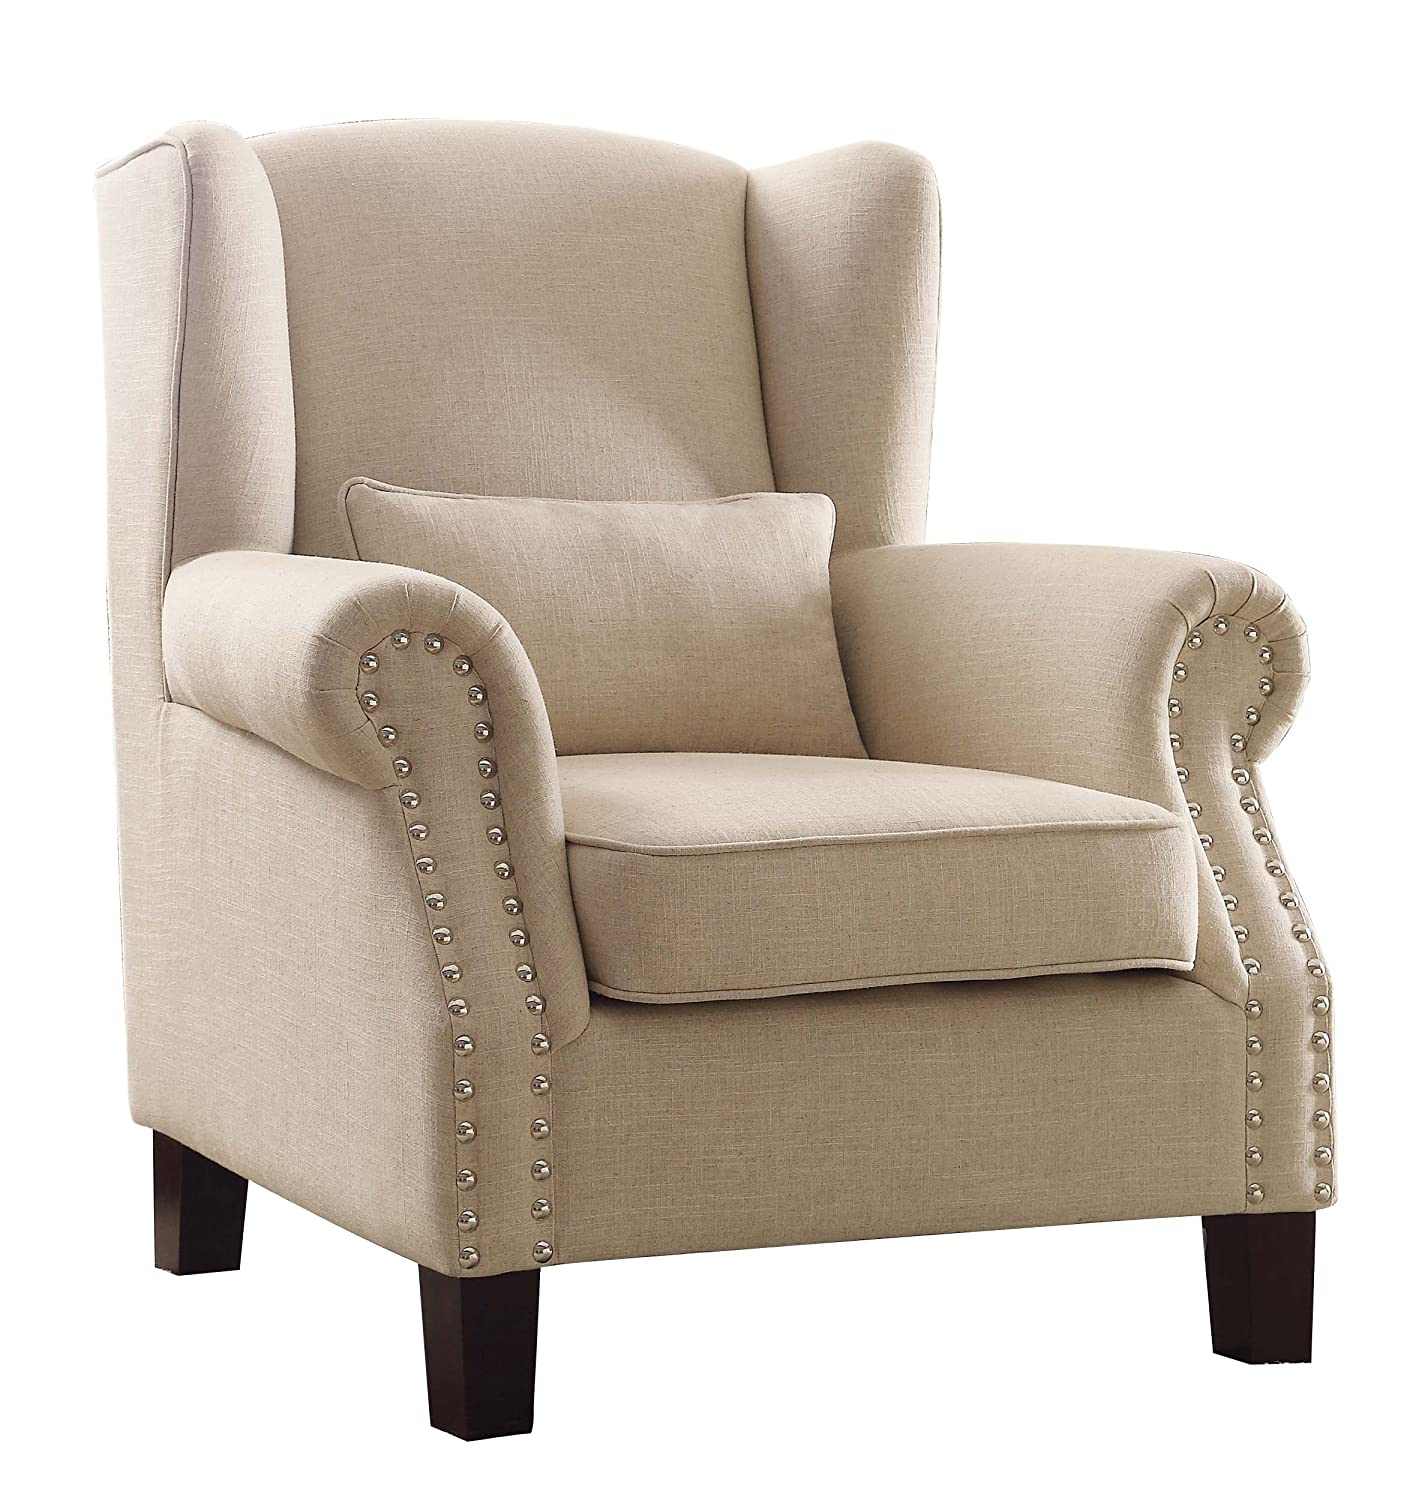 Amazon.com: Homelegance Adelaide Fabric Upholstered Wingback Accent Chair  With Nail Heads Flared Arm, Cream: Kitchen U0026 Dining